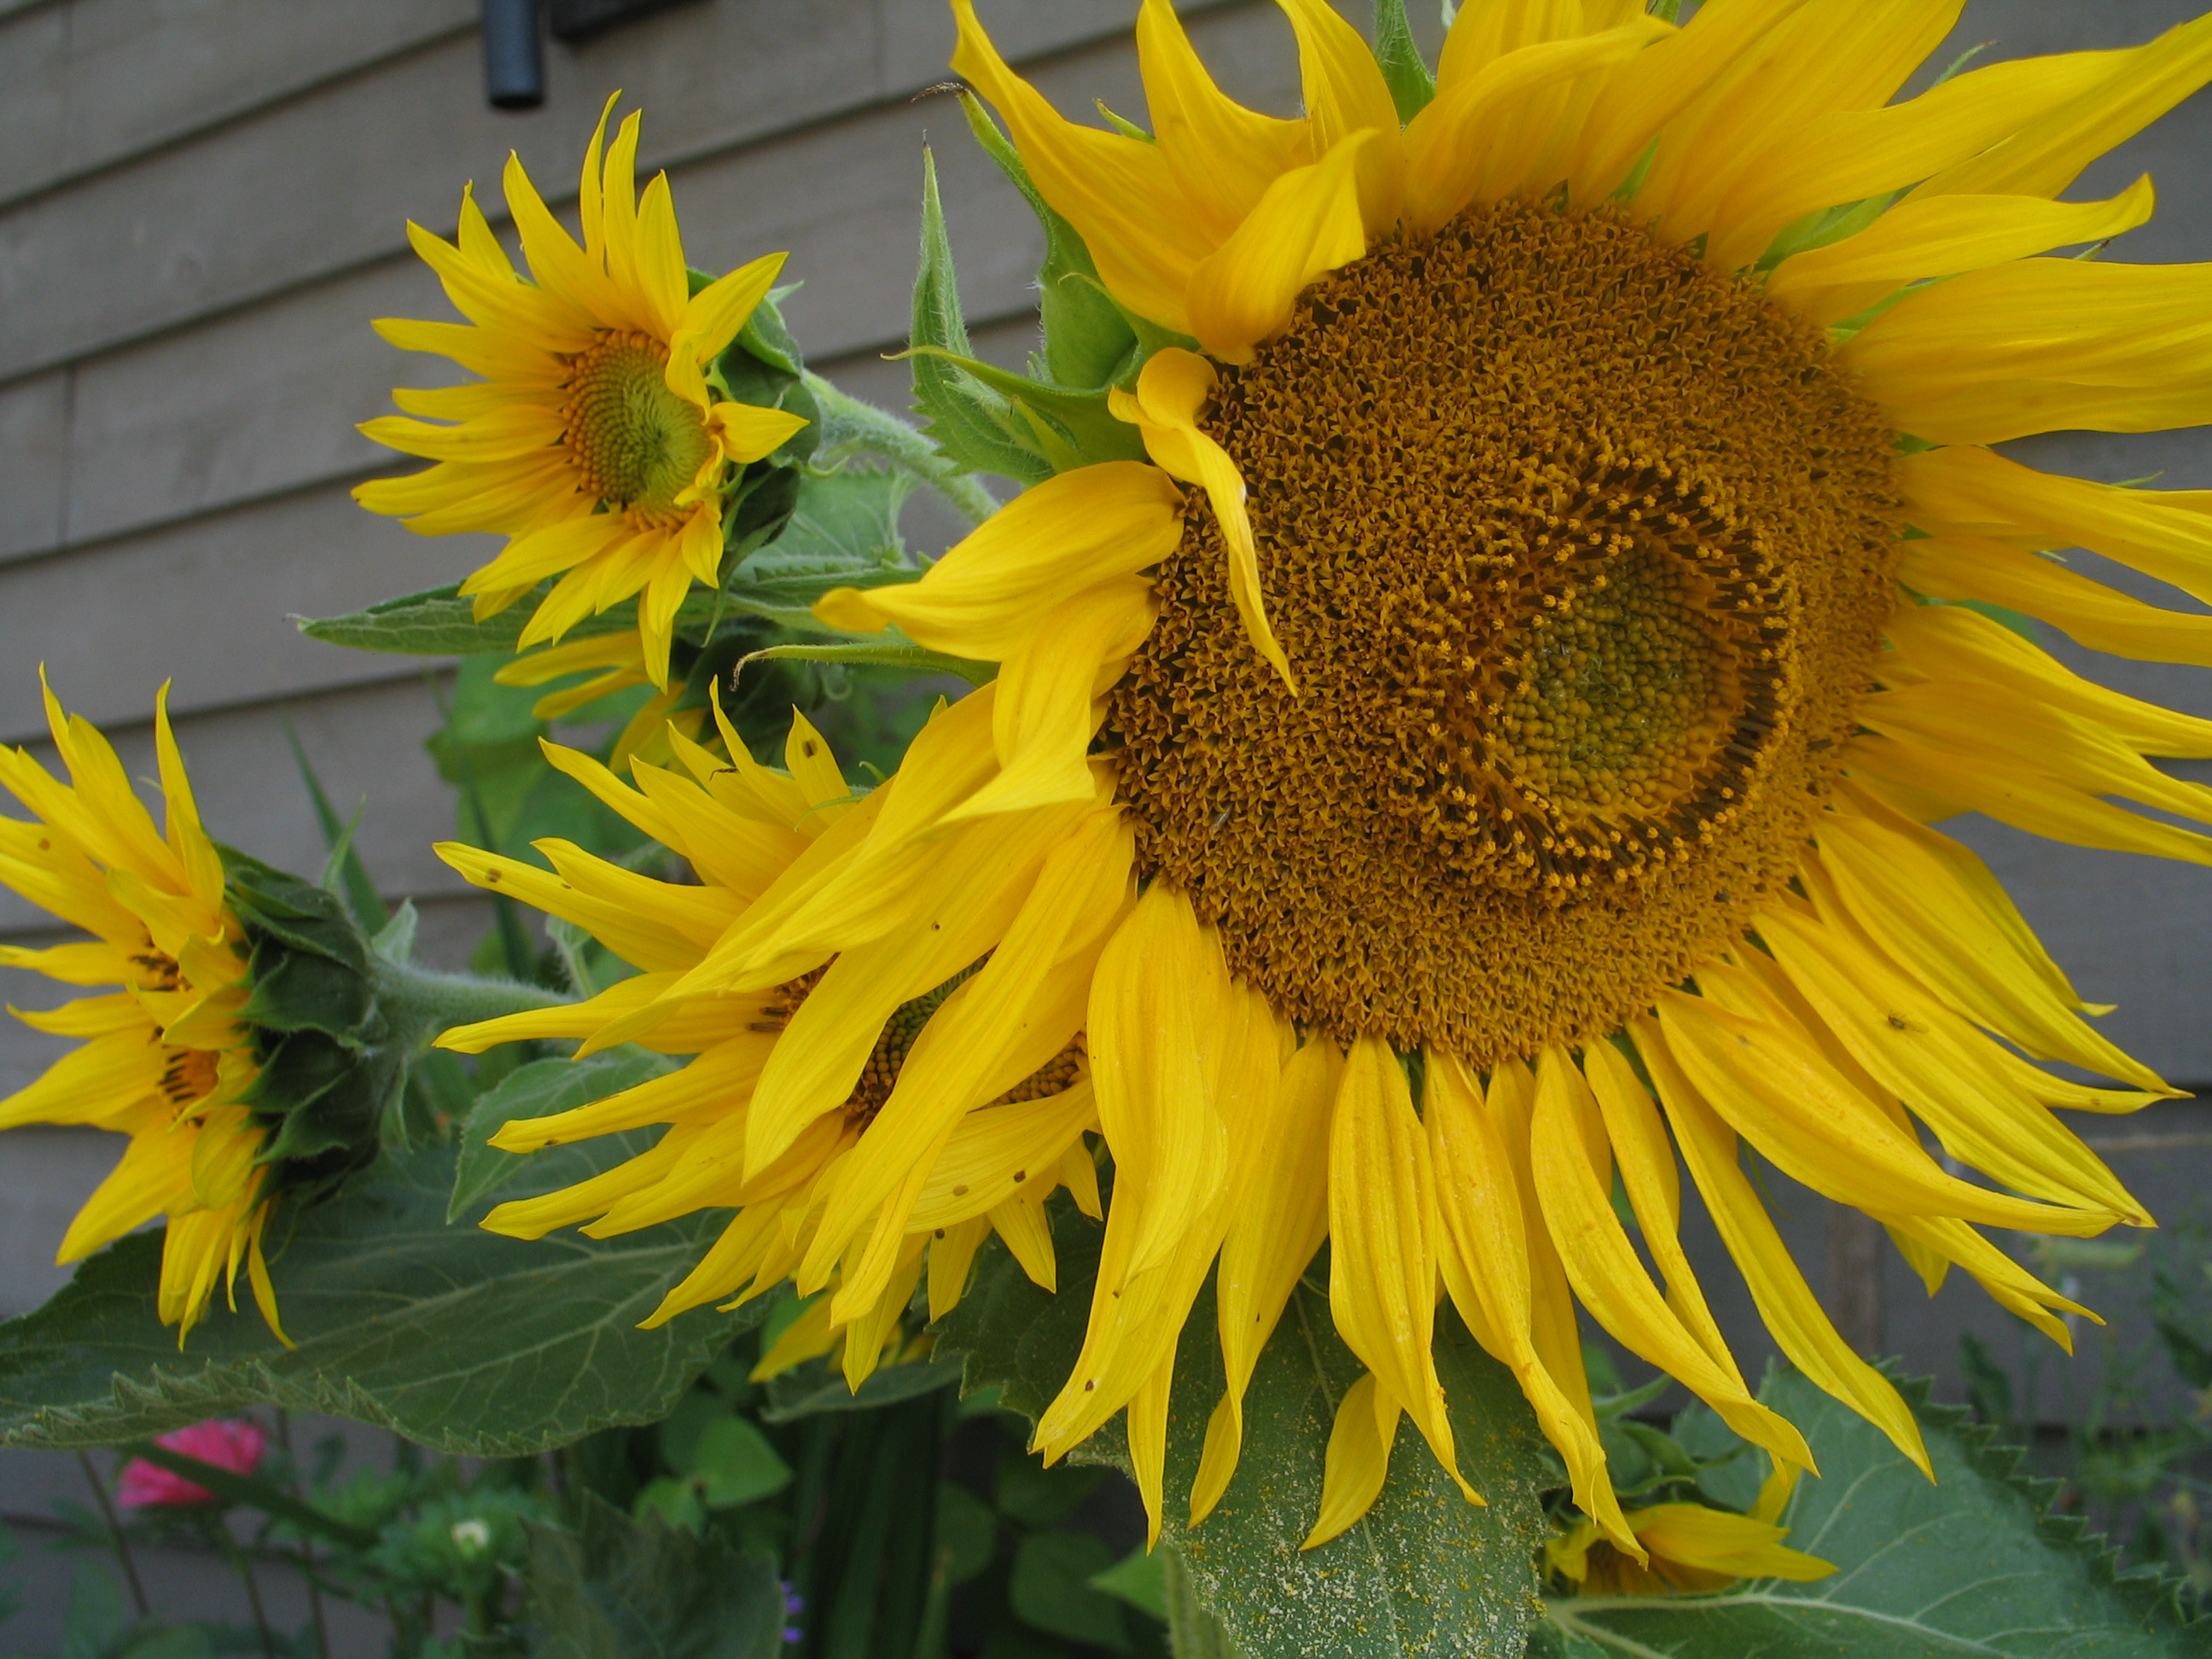 Sunflowers, Fibonacci number sequence and spitals